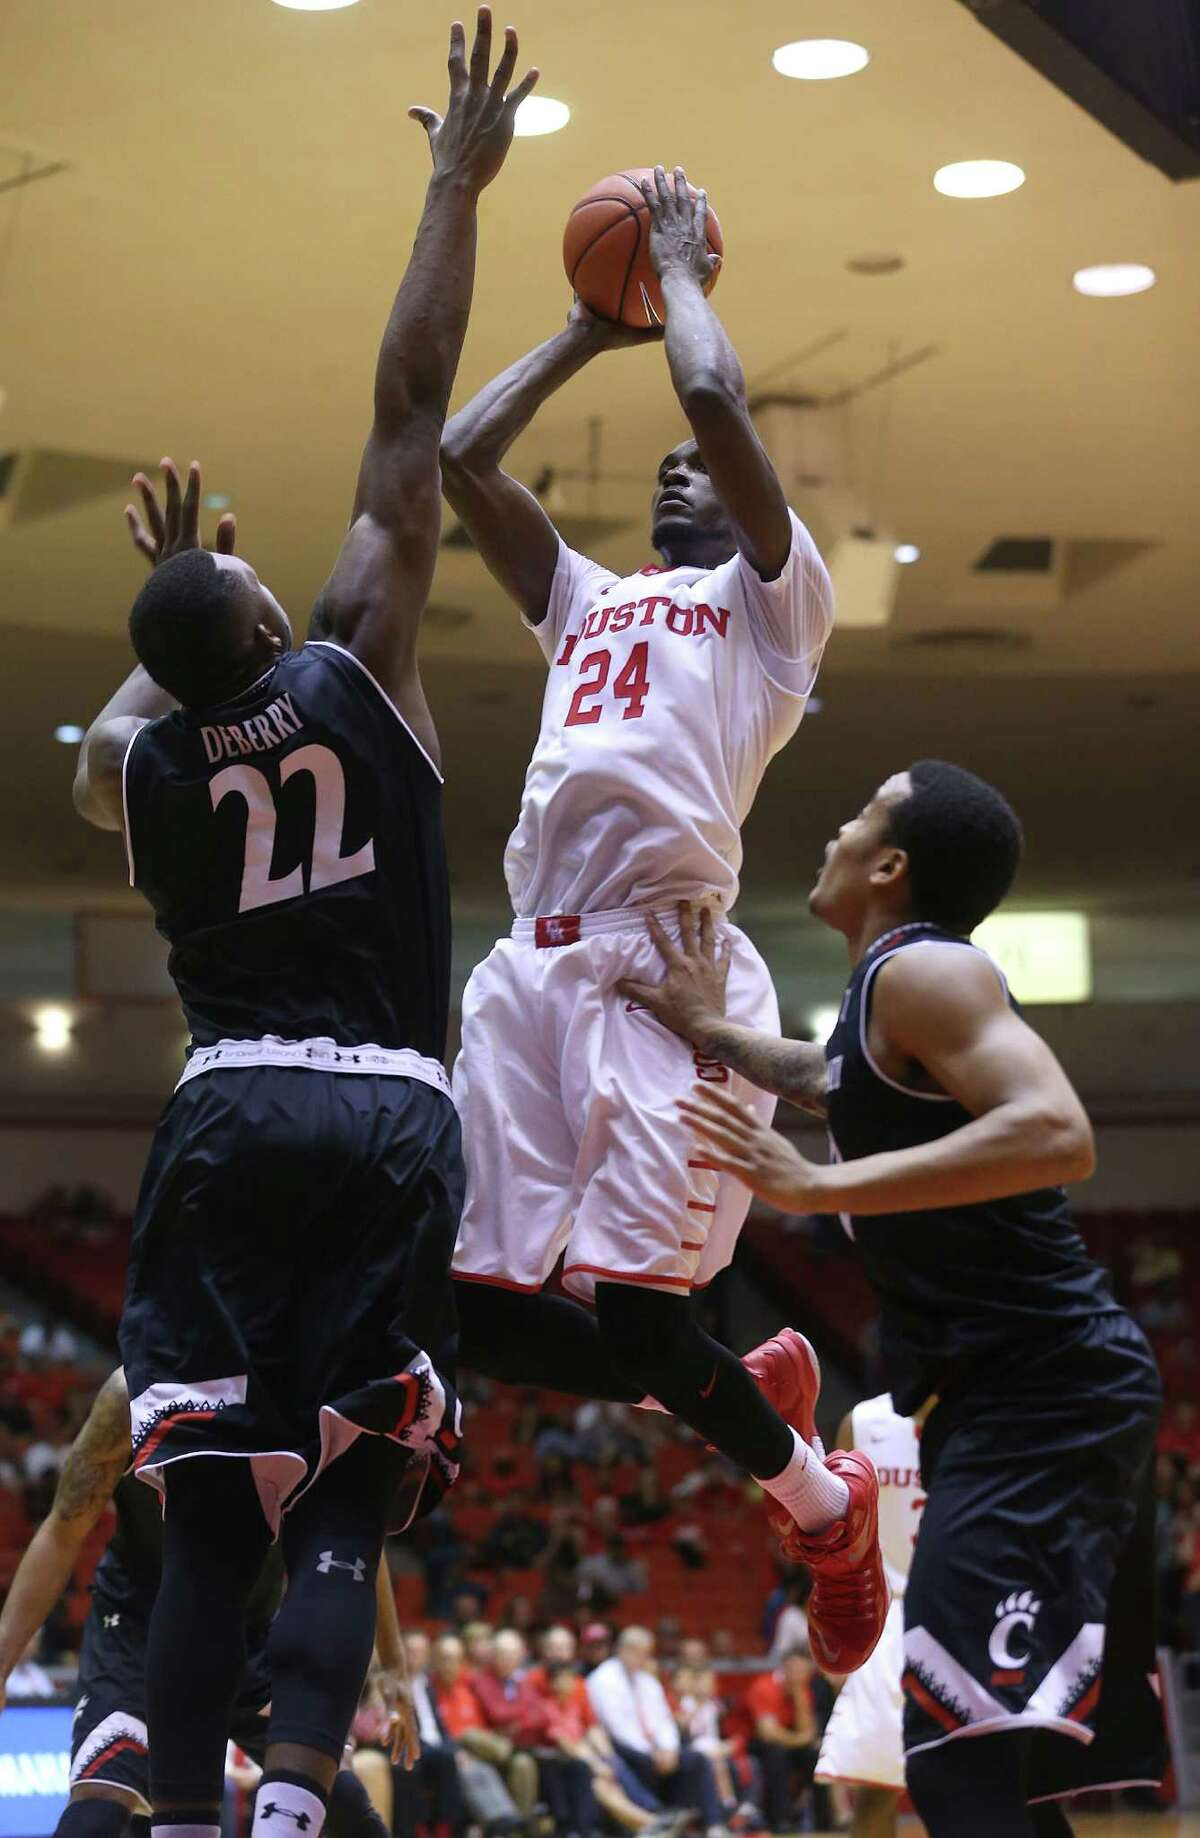 Houston Cougars forward Devonta Pollard (24) puts up two of his 11 points against Cincinnati Bearcats center Coreontae DeBerry (22) at Hofheinz Pavilion on Thursday, March 3, 2016, in Houston. Cougars won 69-56.